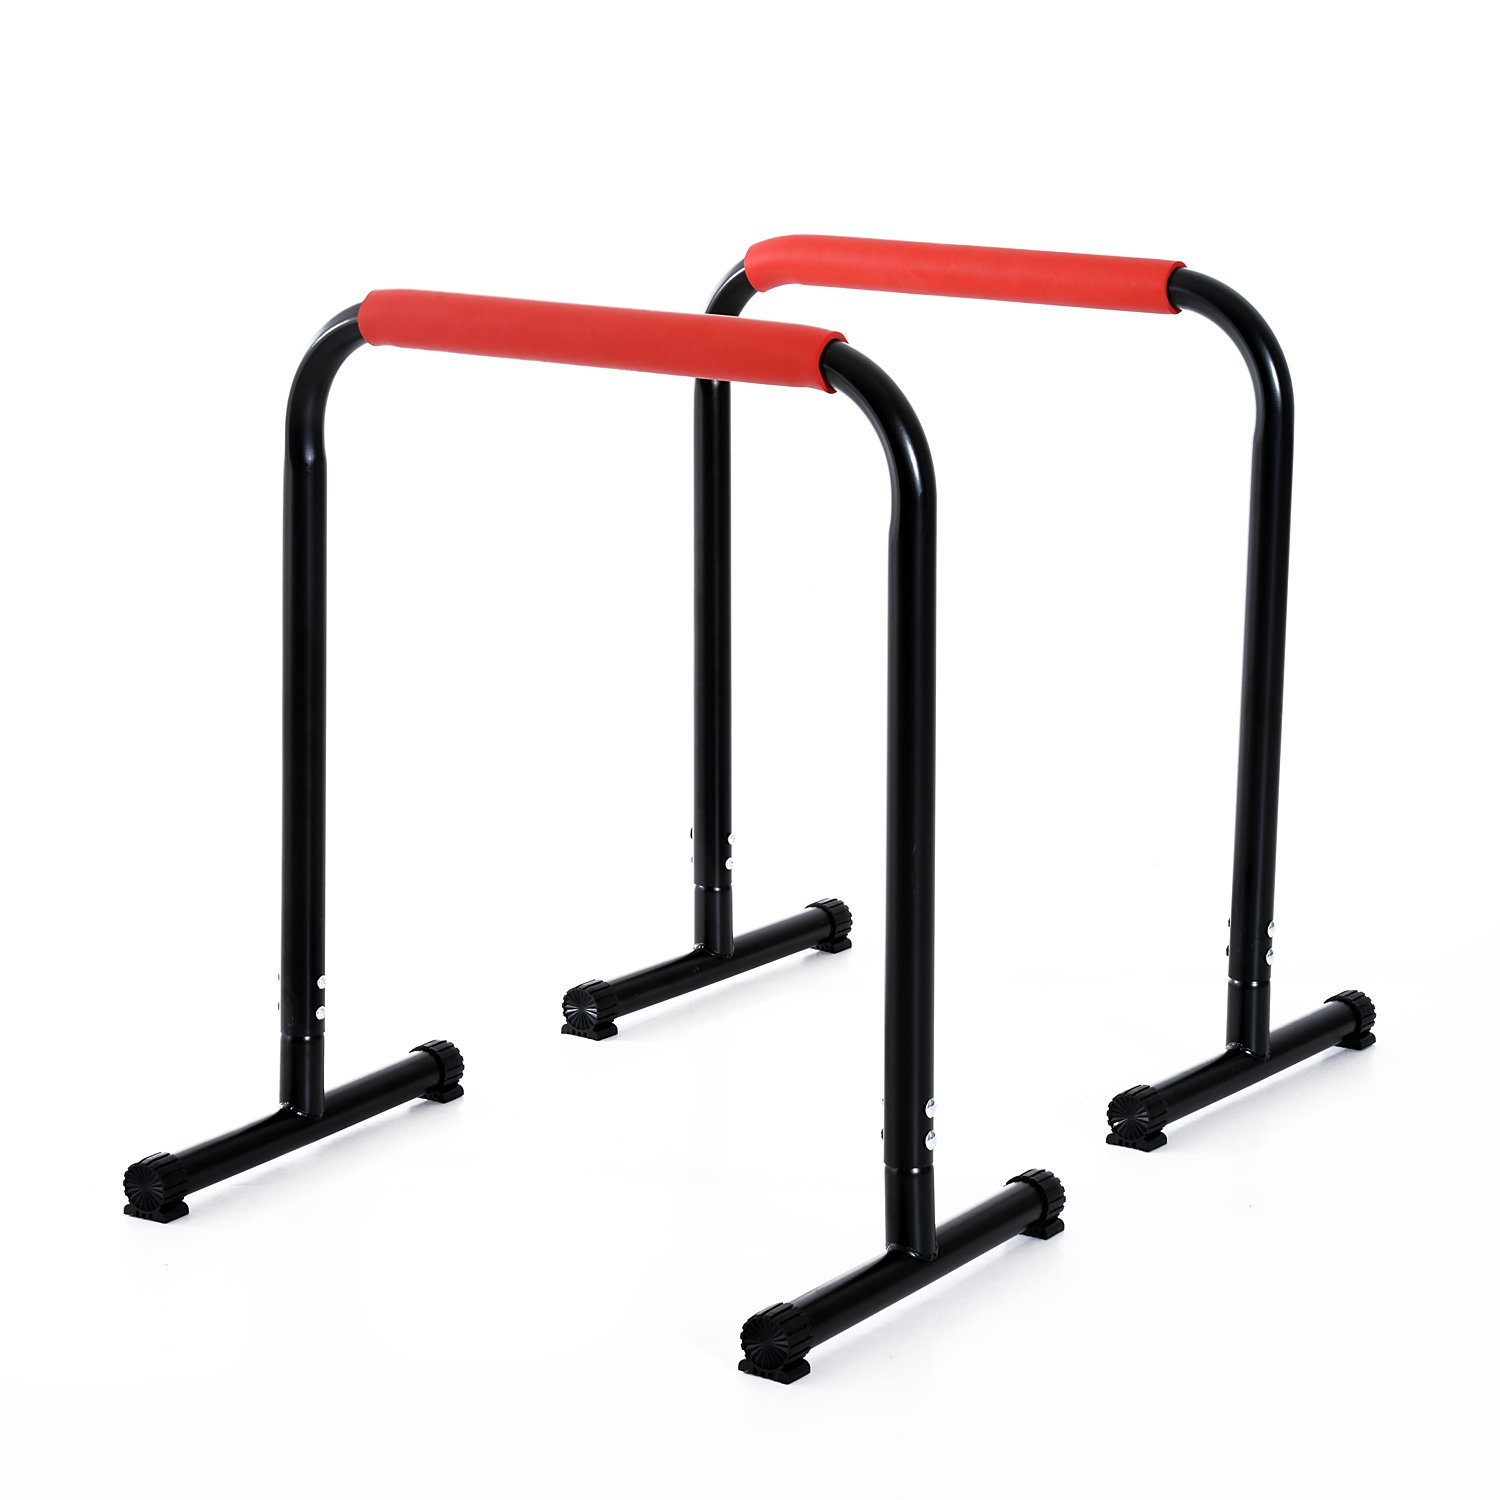 Workout Training Exercise Home Fitness Handle Tools Push Up Stands Pull Gym Bar